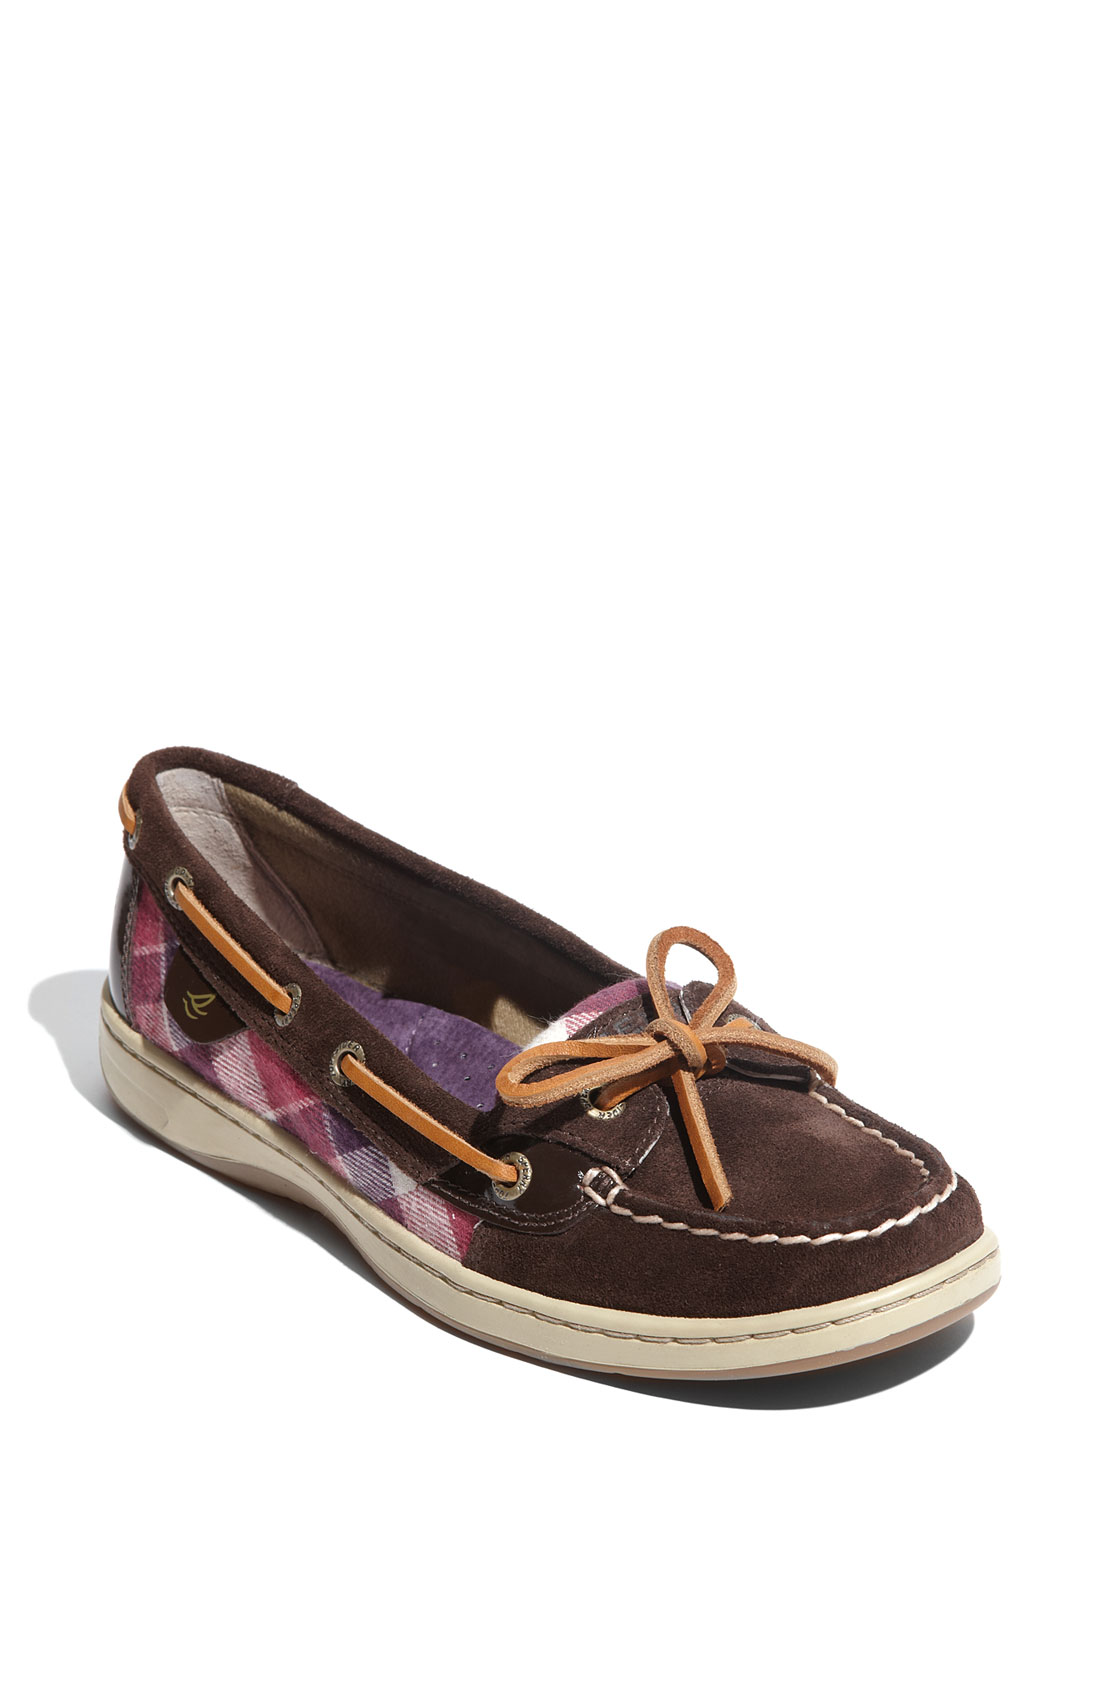 Sperry Top Sider Authentic Original Boat Shoe Dark Brown